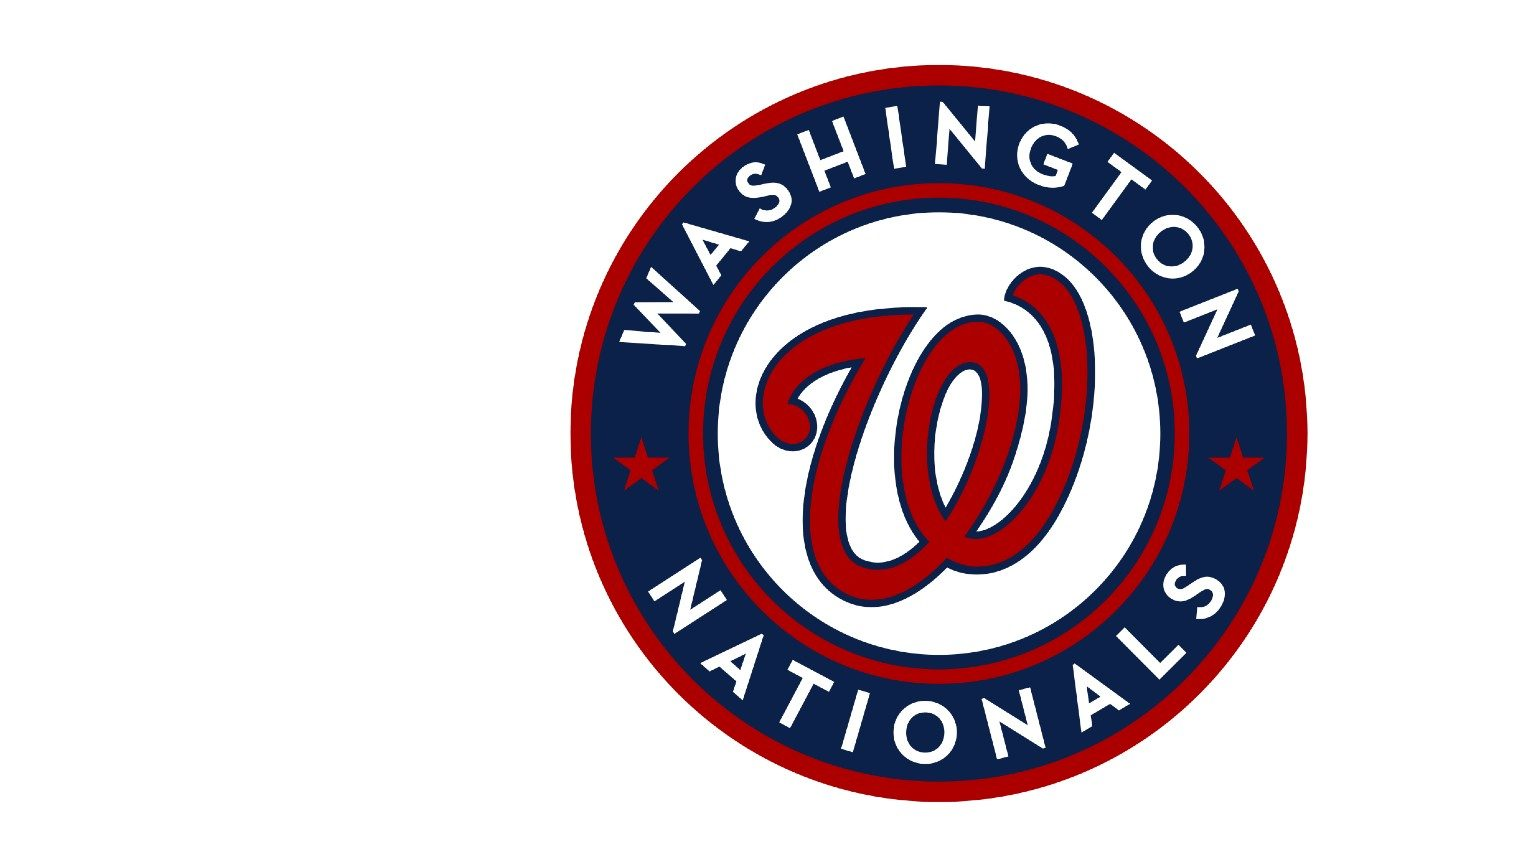 Washitong Nationals Logo